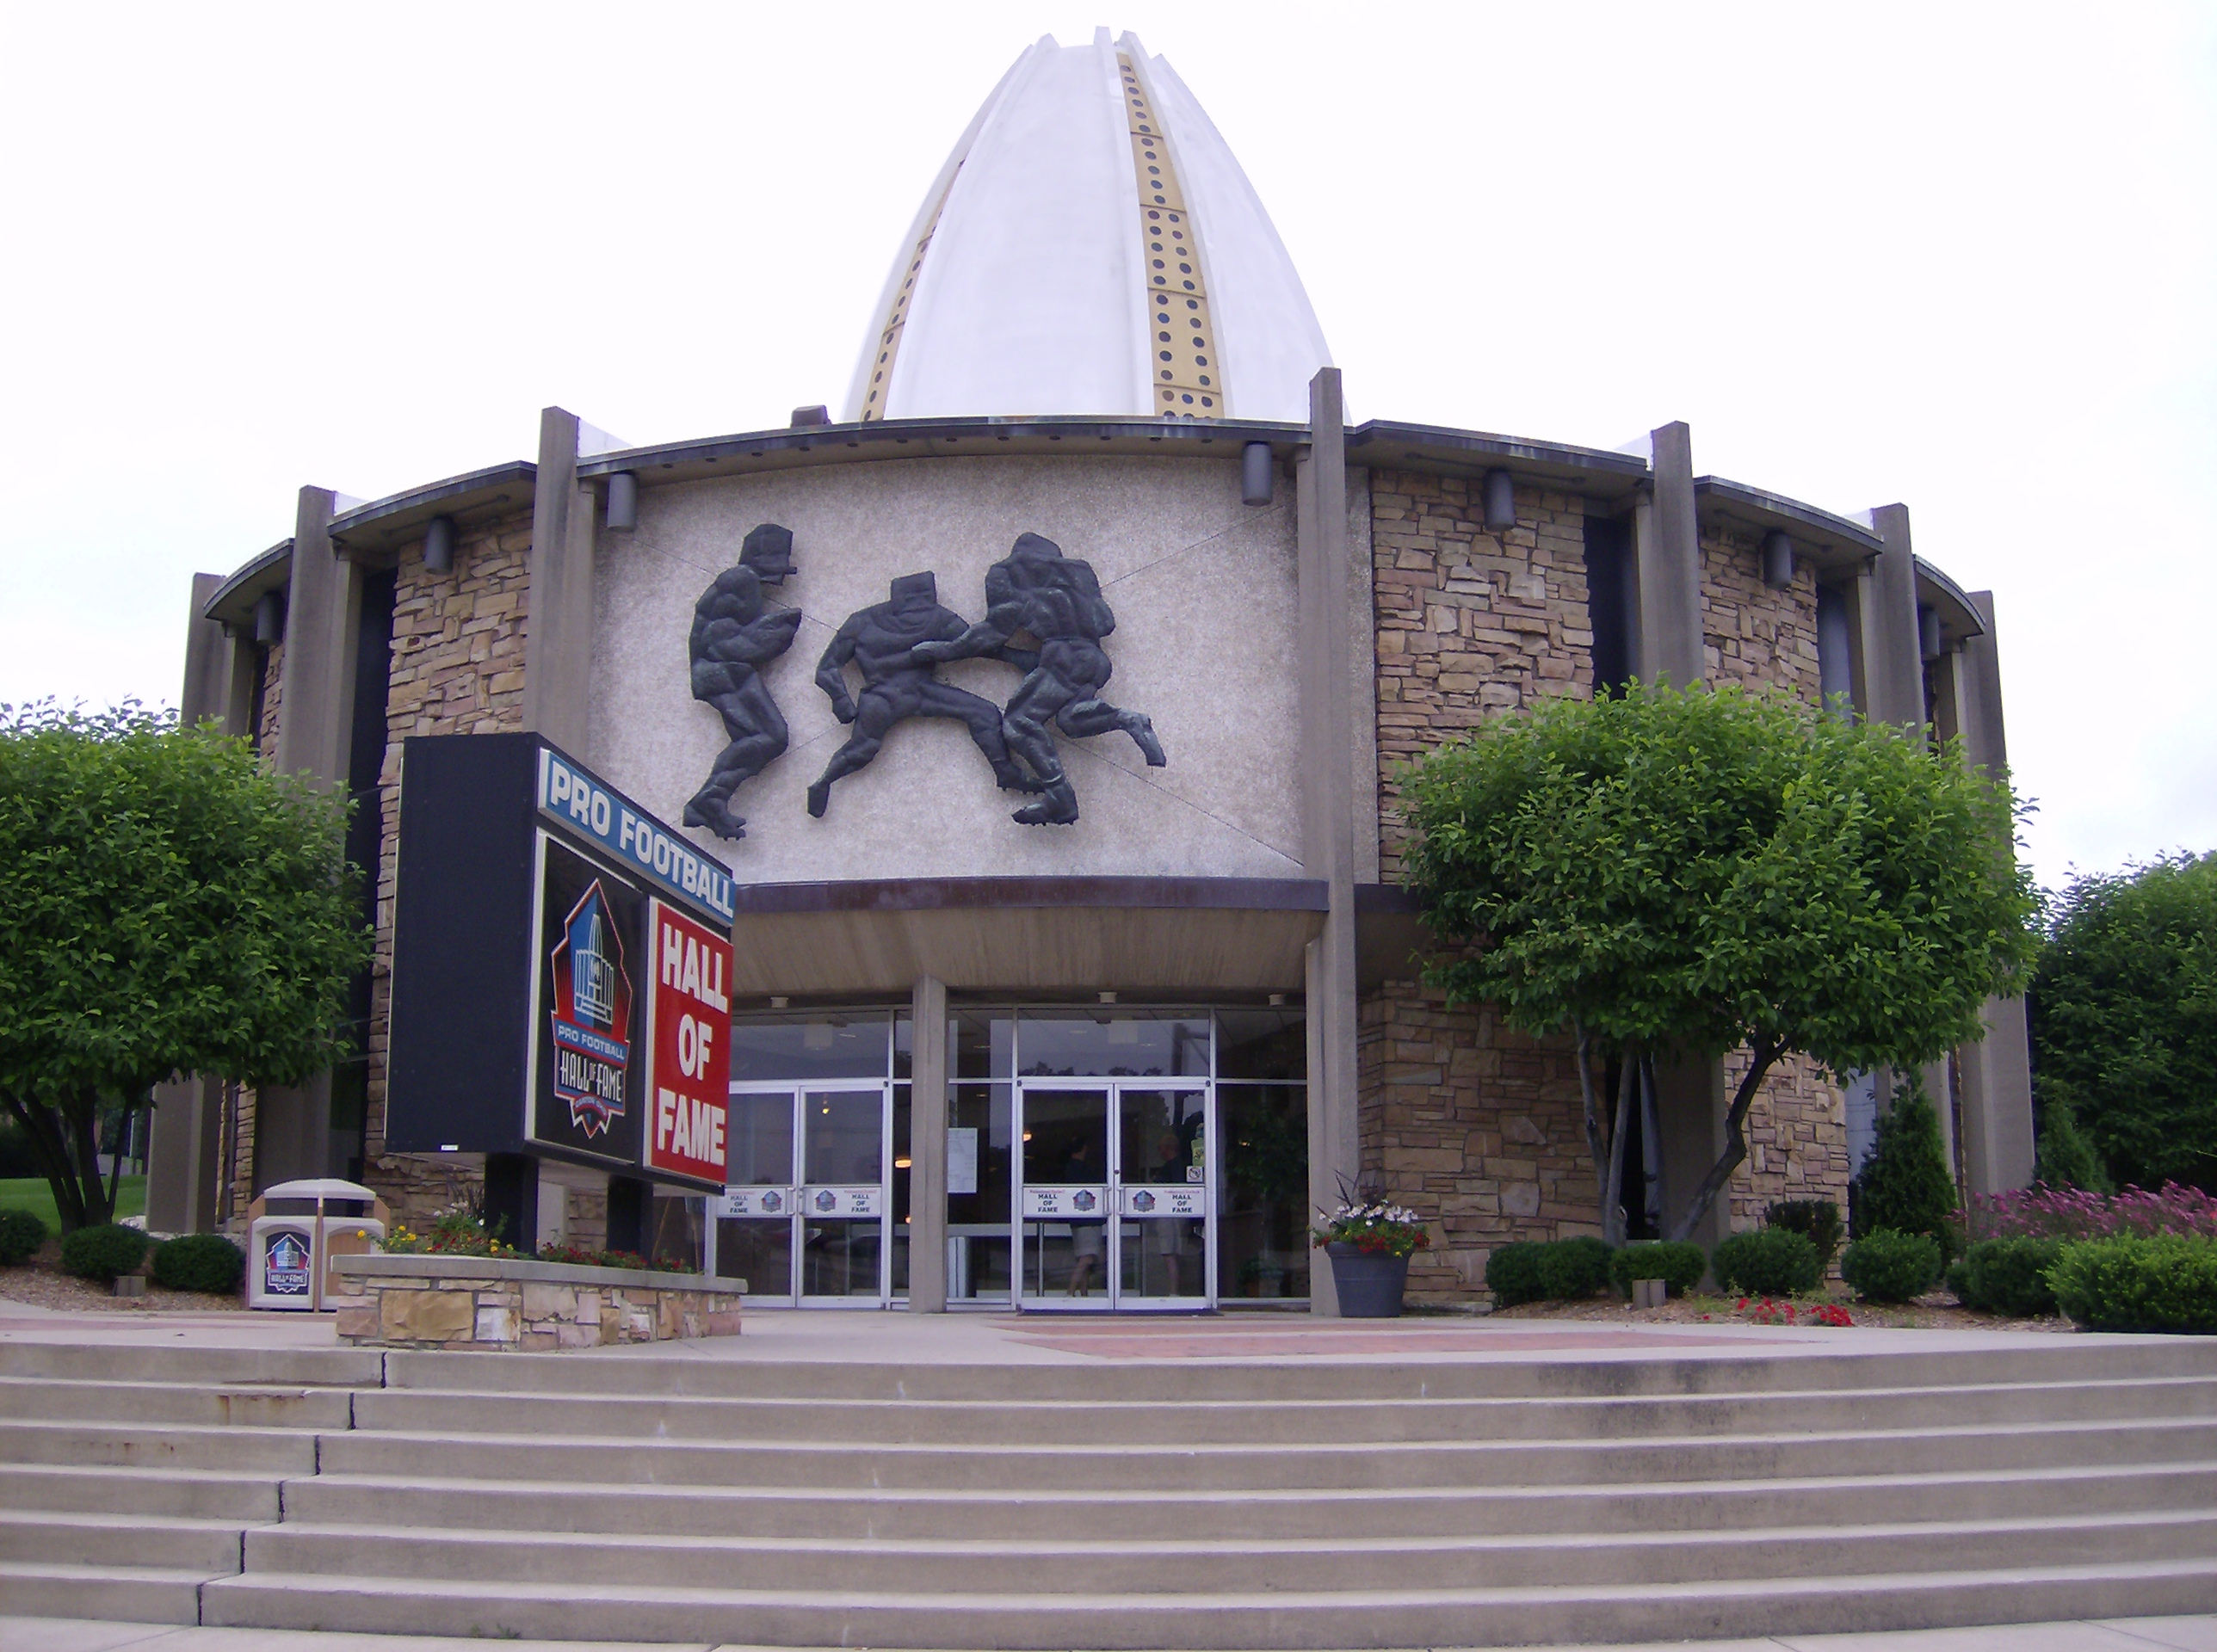 National Football League (NFL) Hall of Fame